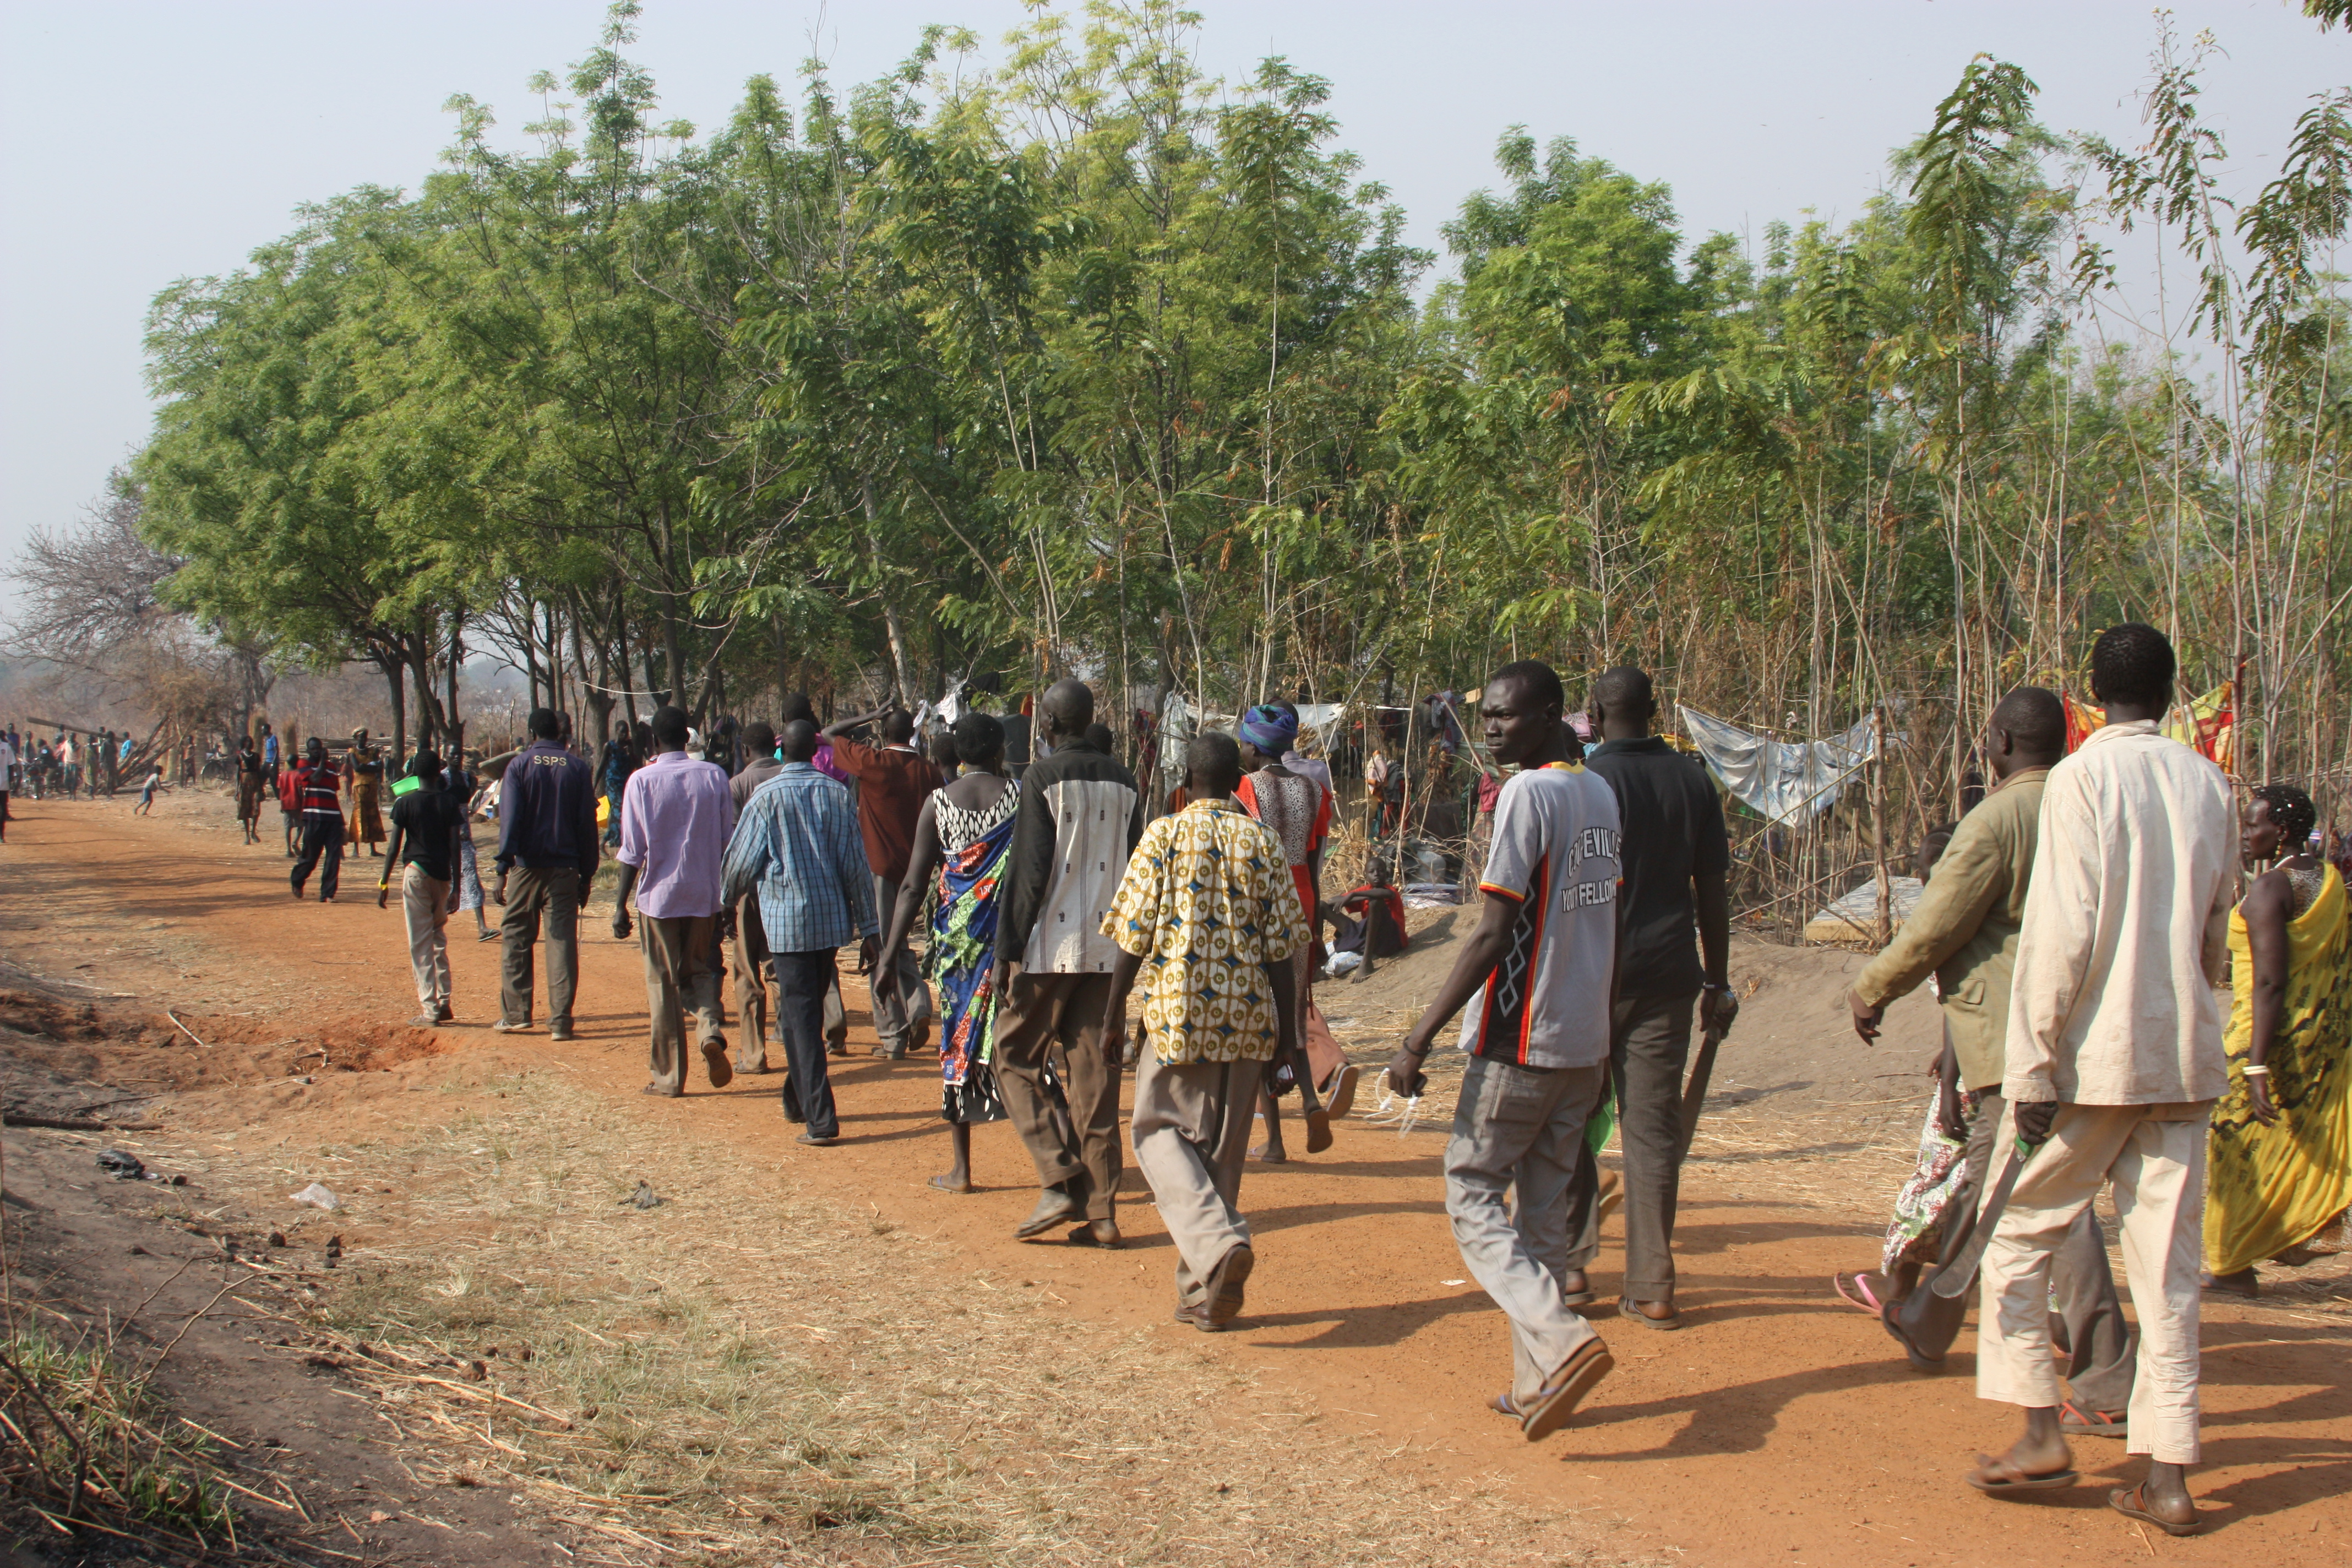 South Sudanese refugees in Uganda. As of May 2014 there are approximately 863,000 South Sudanese seeking refuge in neighbouring countries. Photo Source: European Commission DG ECHO via Flickr Creative Commons.